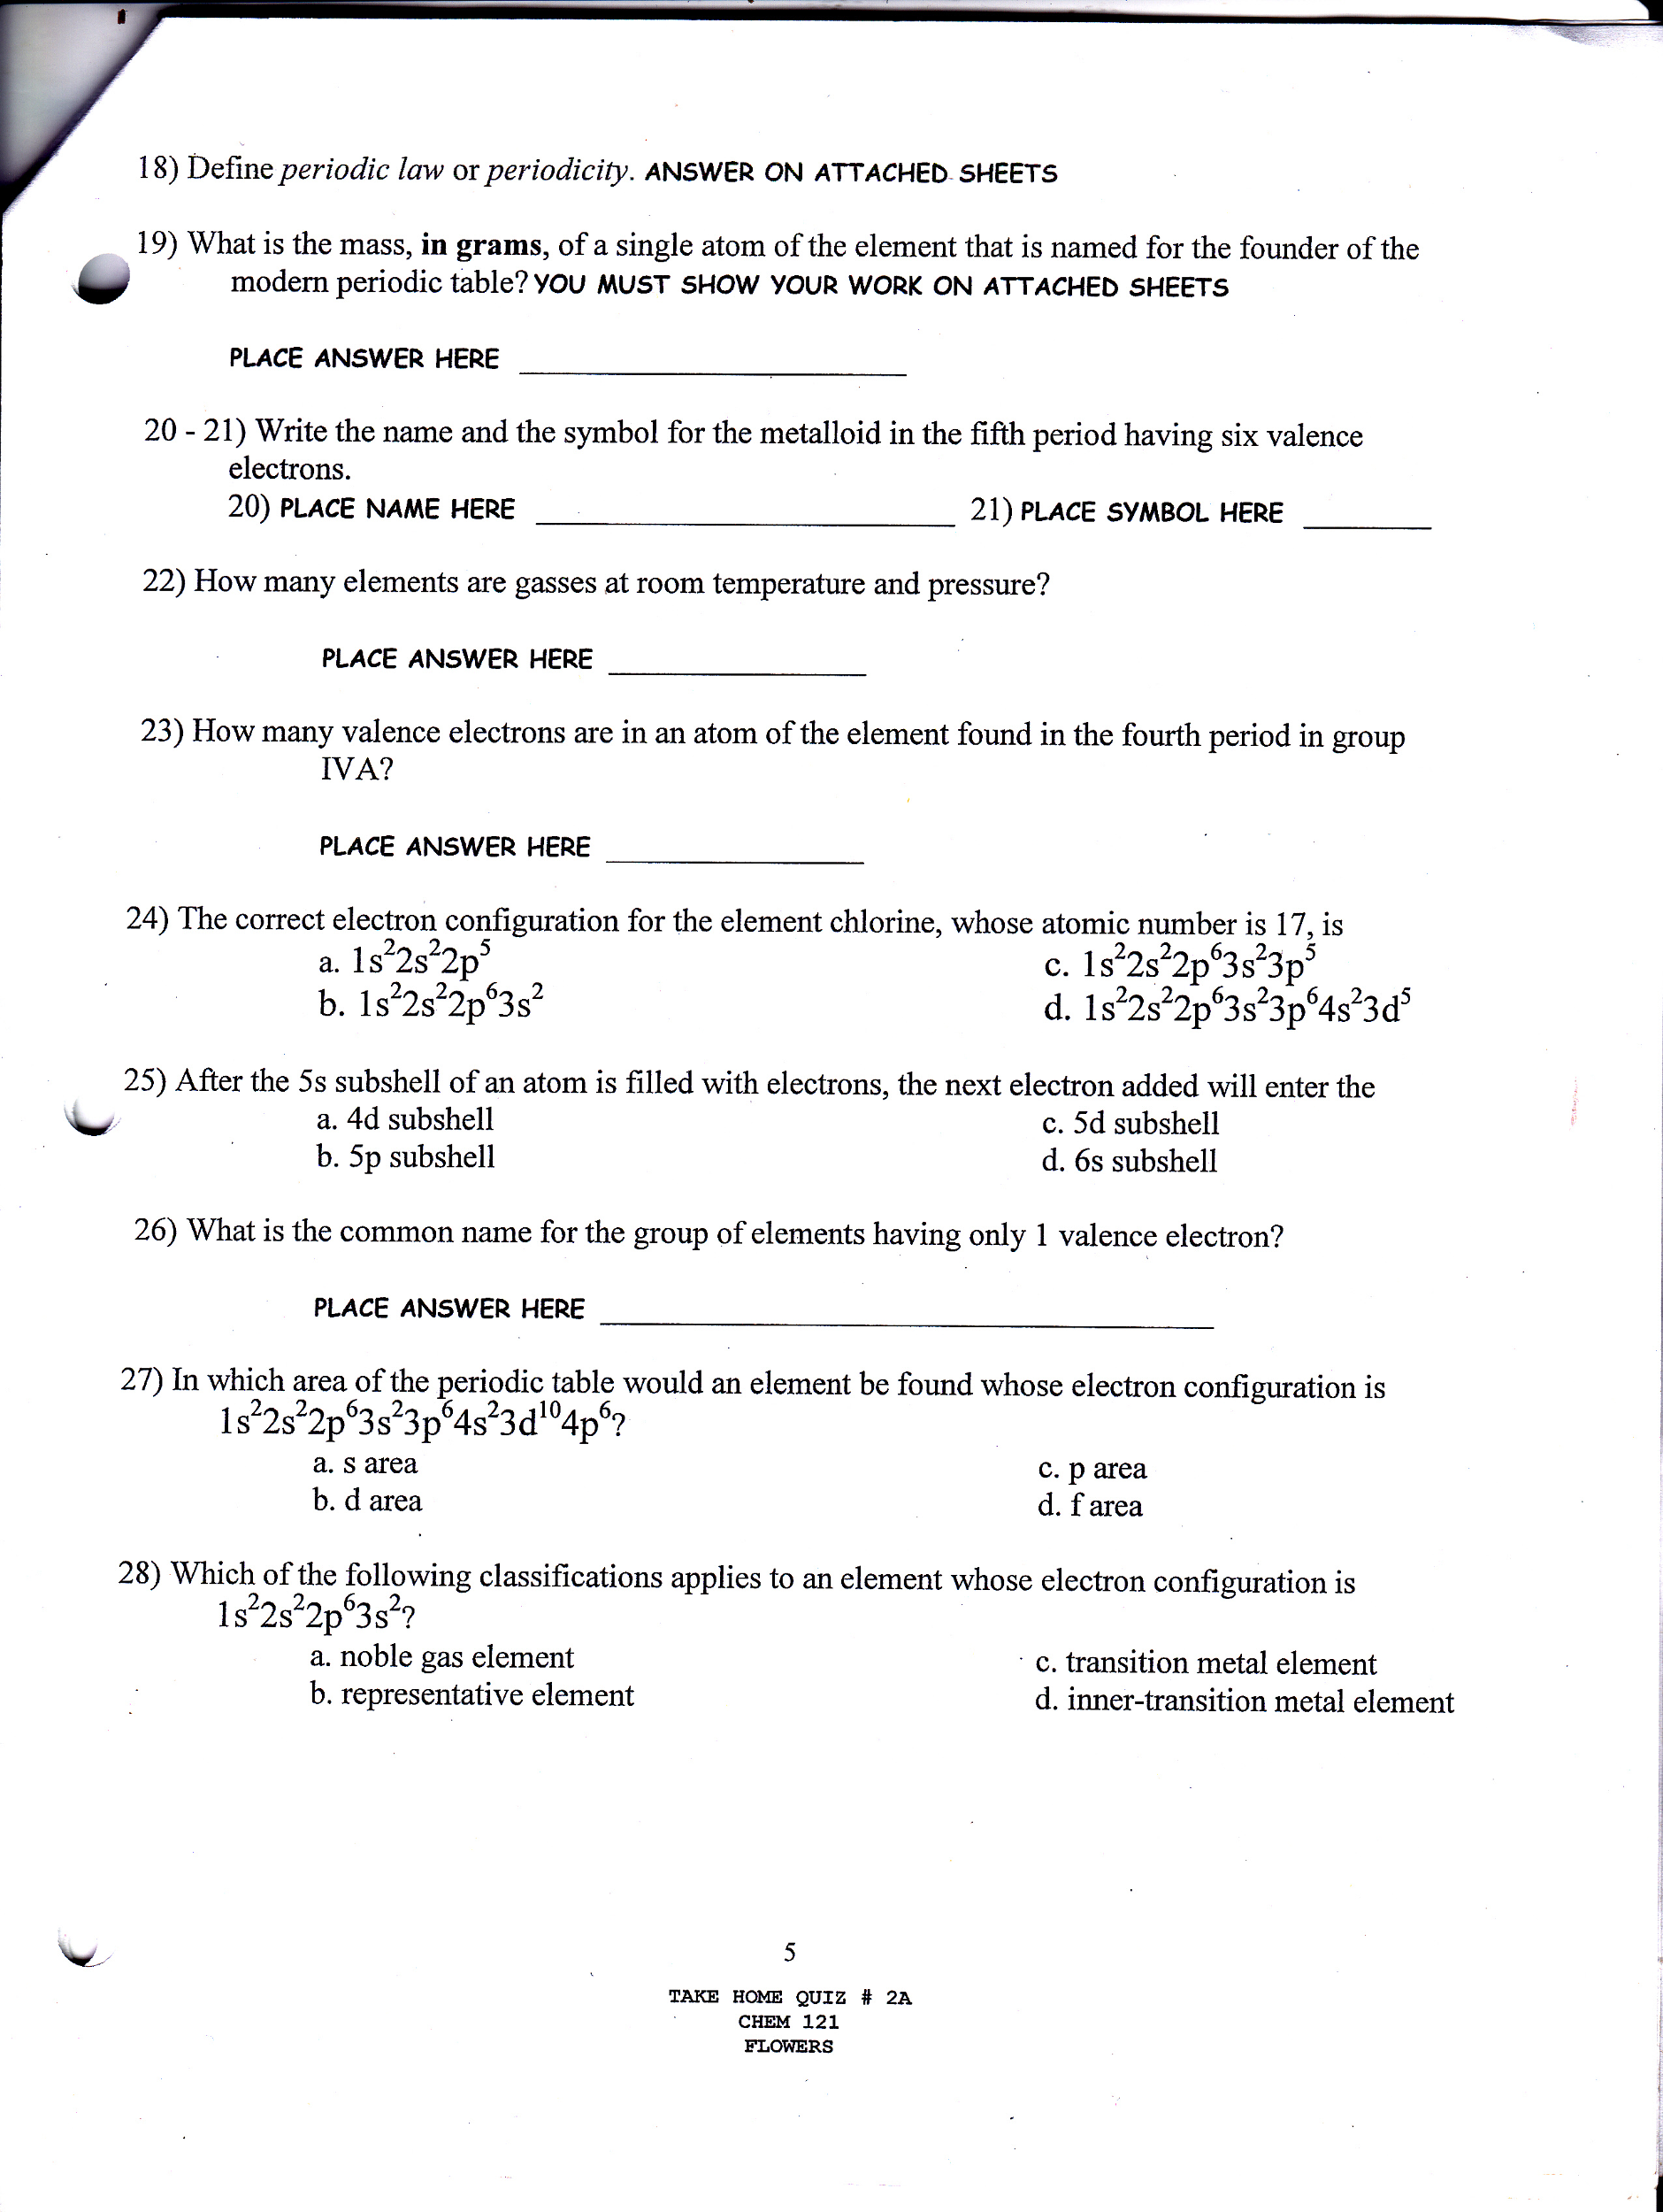 Chemistry archive november 02 2015 chegg image for 18 define periodic law or periodicity answer on attached sheets 19 biocorpaavc Choice Image